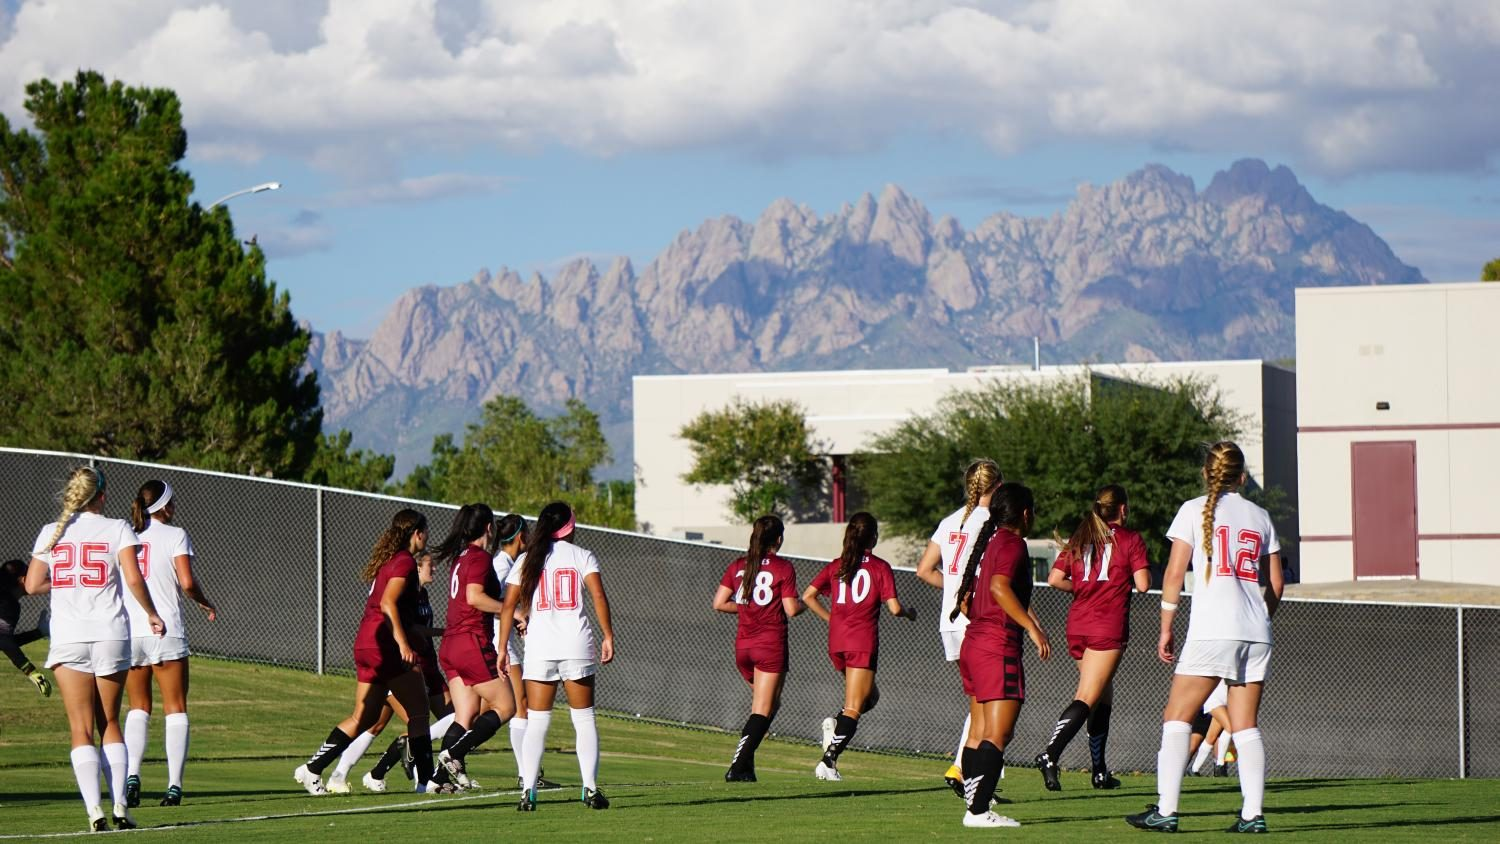 NMSU girls soccer defends the field against the UNM Lobos